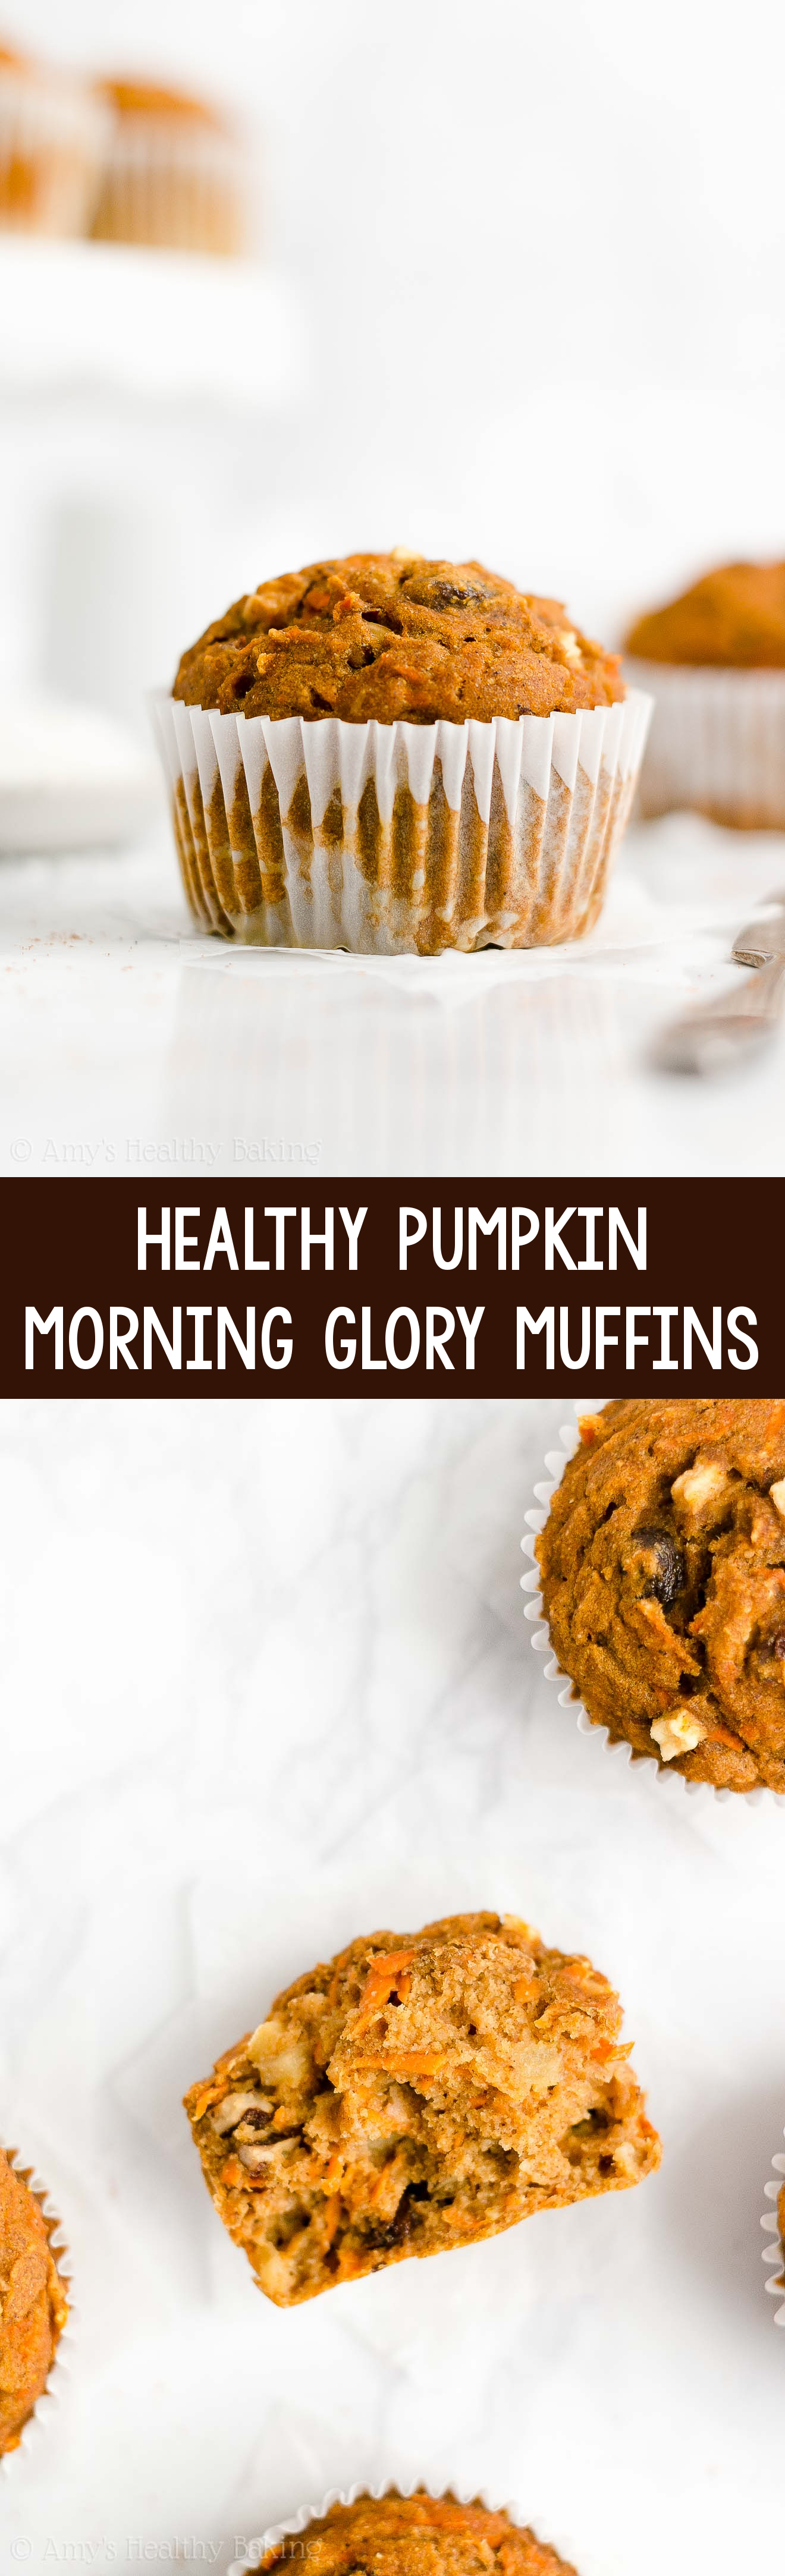 Best EVER Easy Healthy Low Calorie Gluten Free No Sugar Pumpkin Morning Glory Muffins